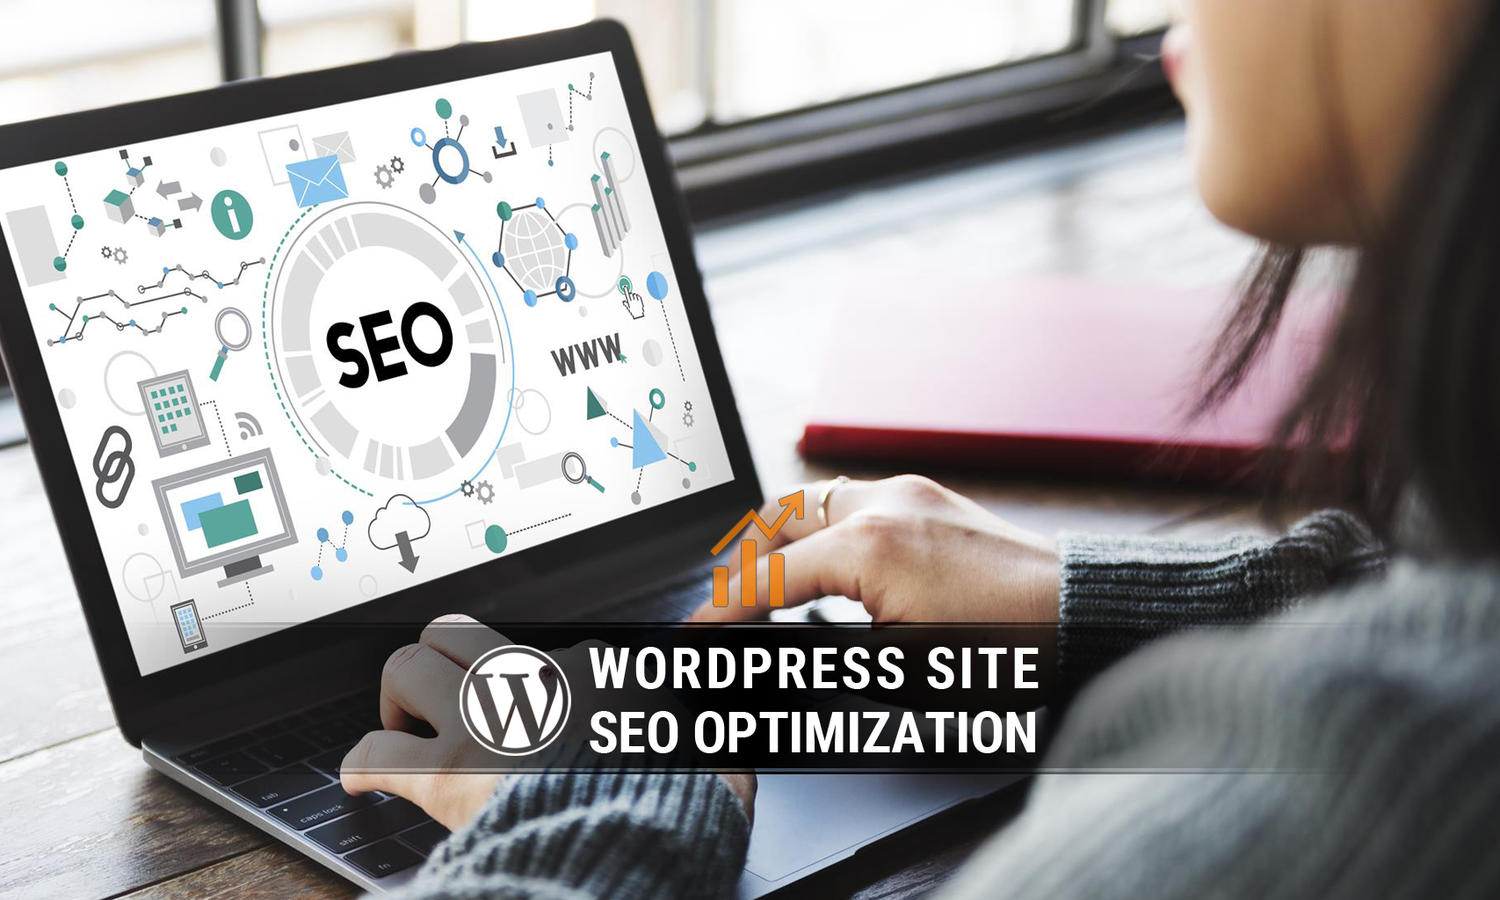 WordPress SEO Optimization by madridnyc - 110570